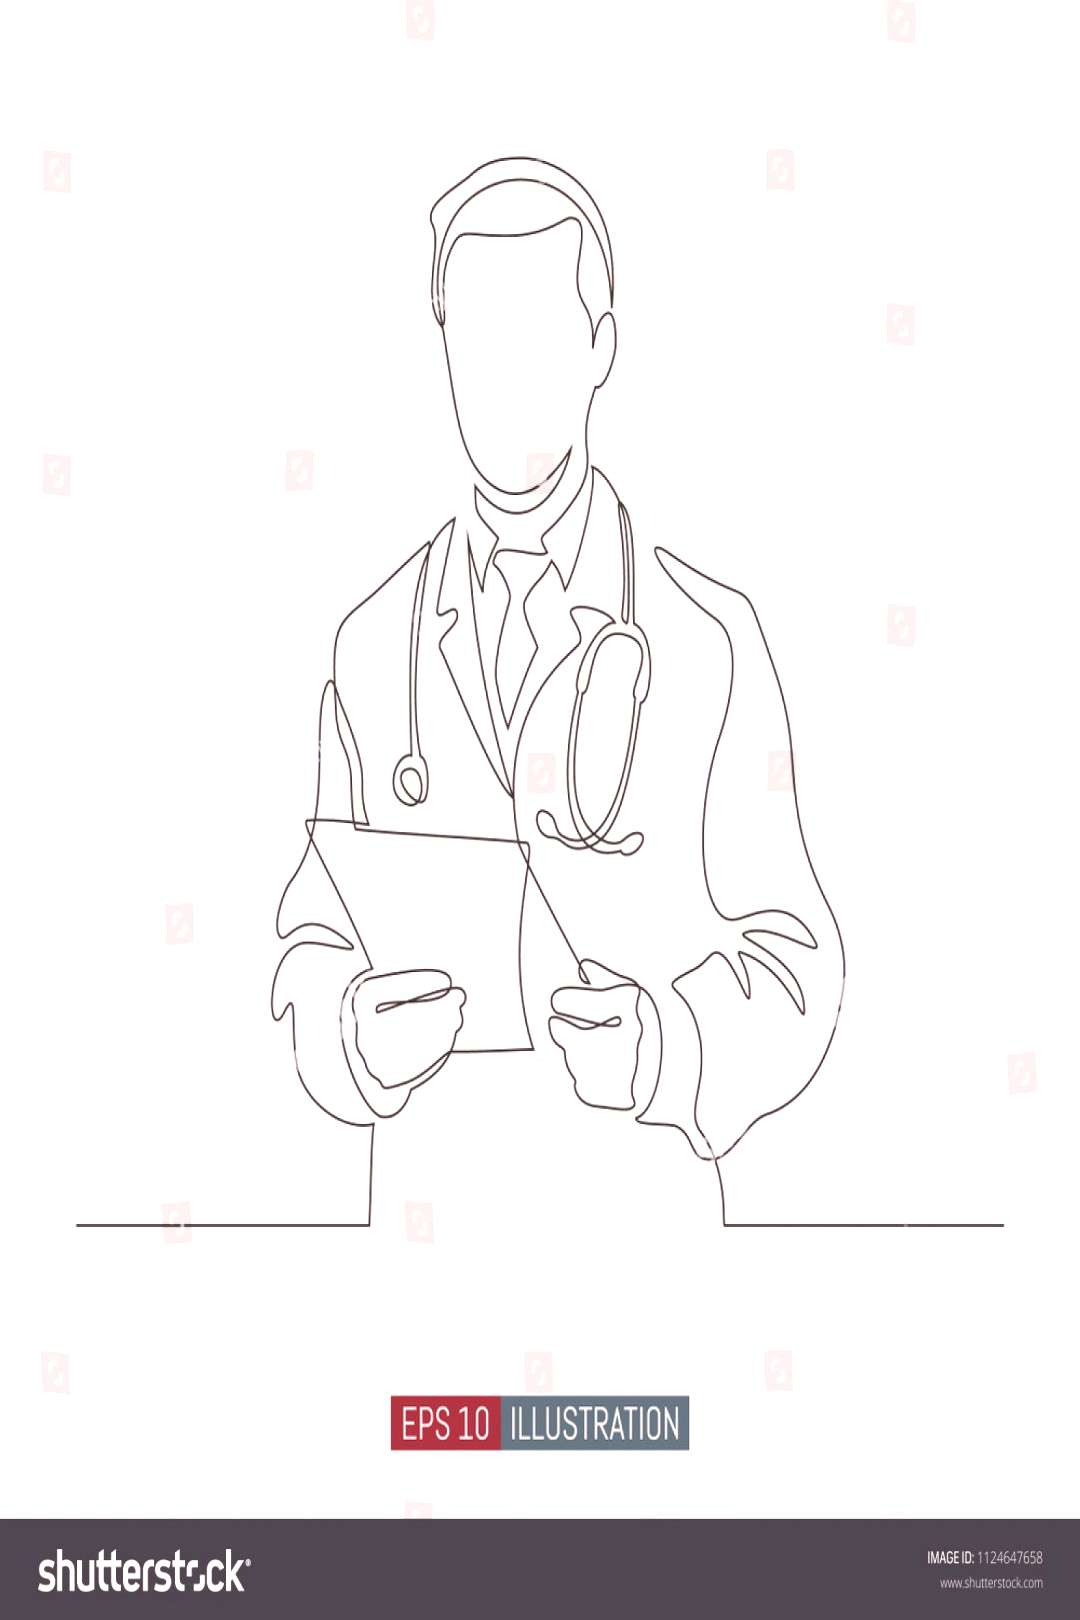 Continuous line drawing of doctors silhouette. Hospital scene. Template for your design works. Vect